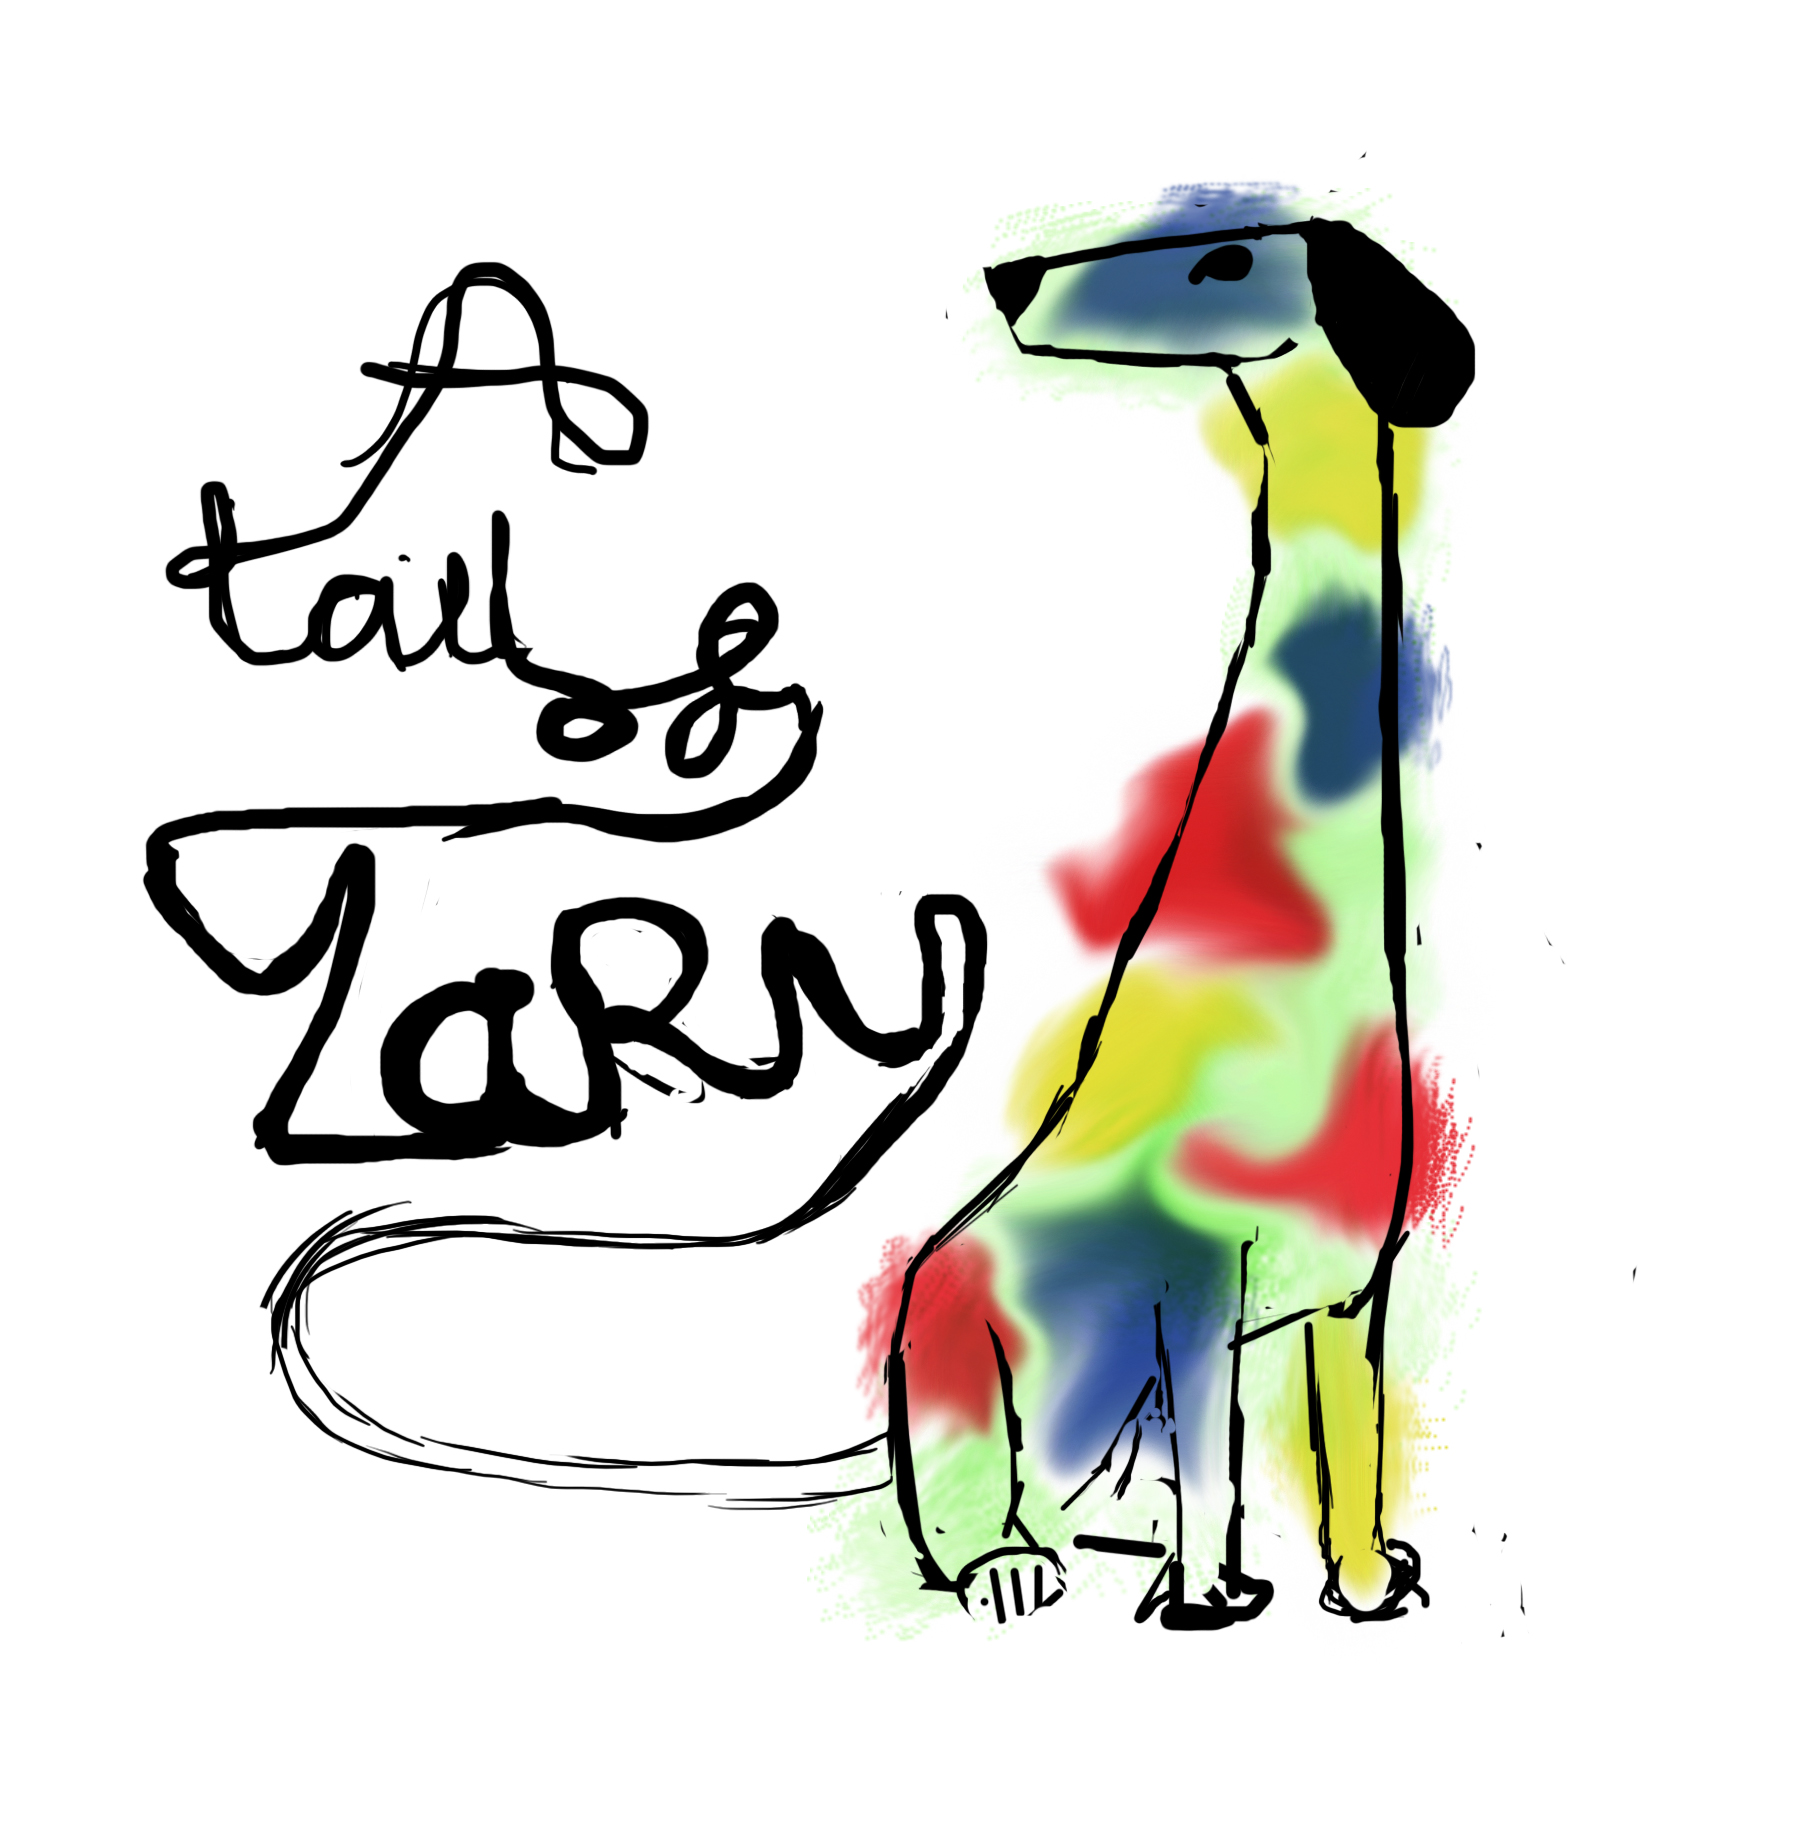 THE SPOTTED DOG - A Tail of Yarn